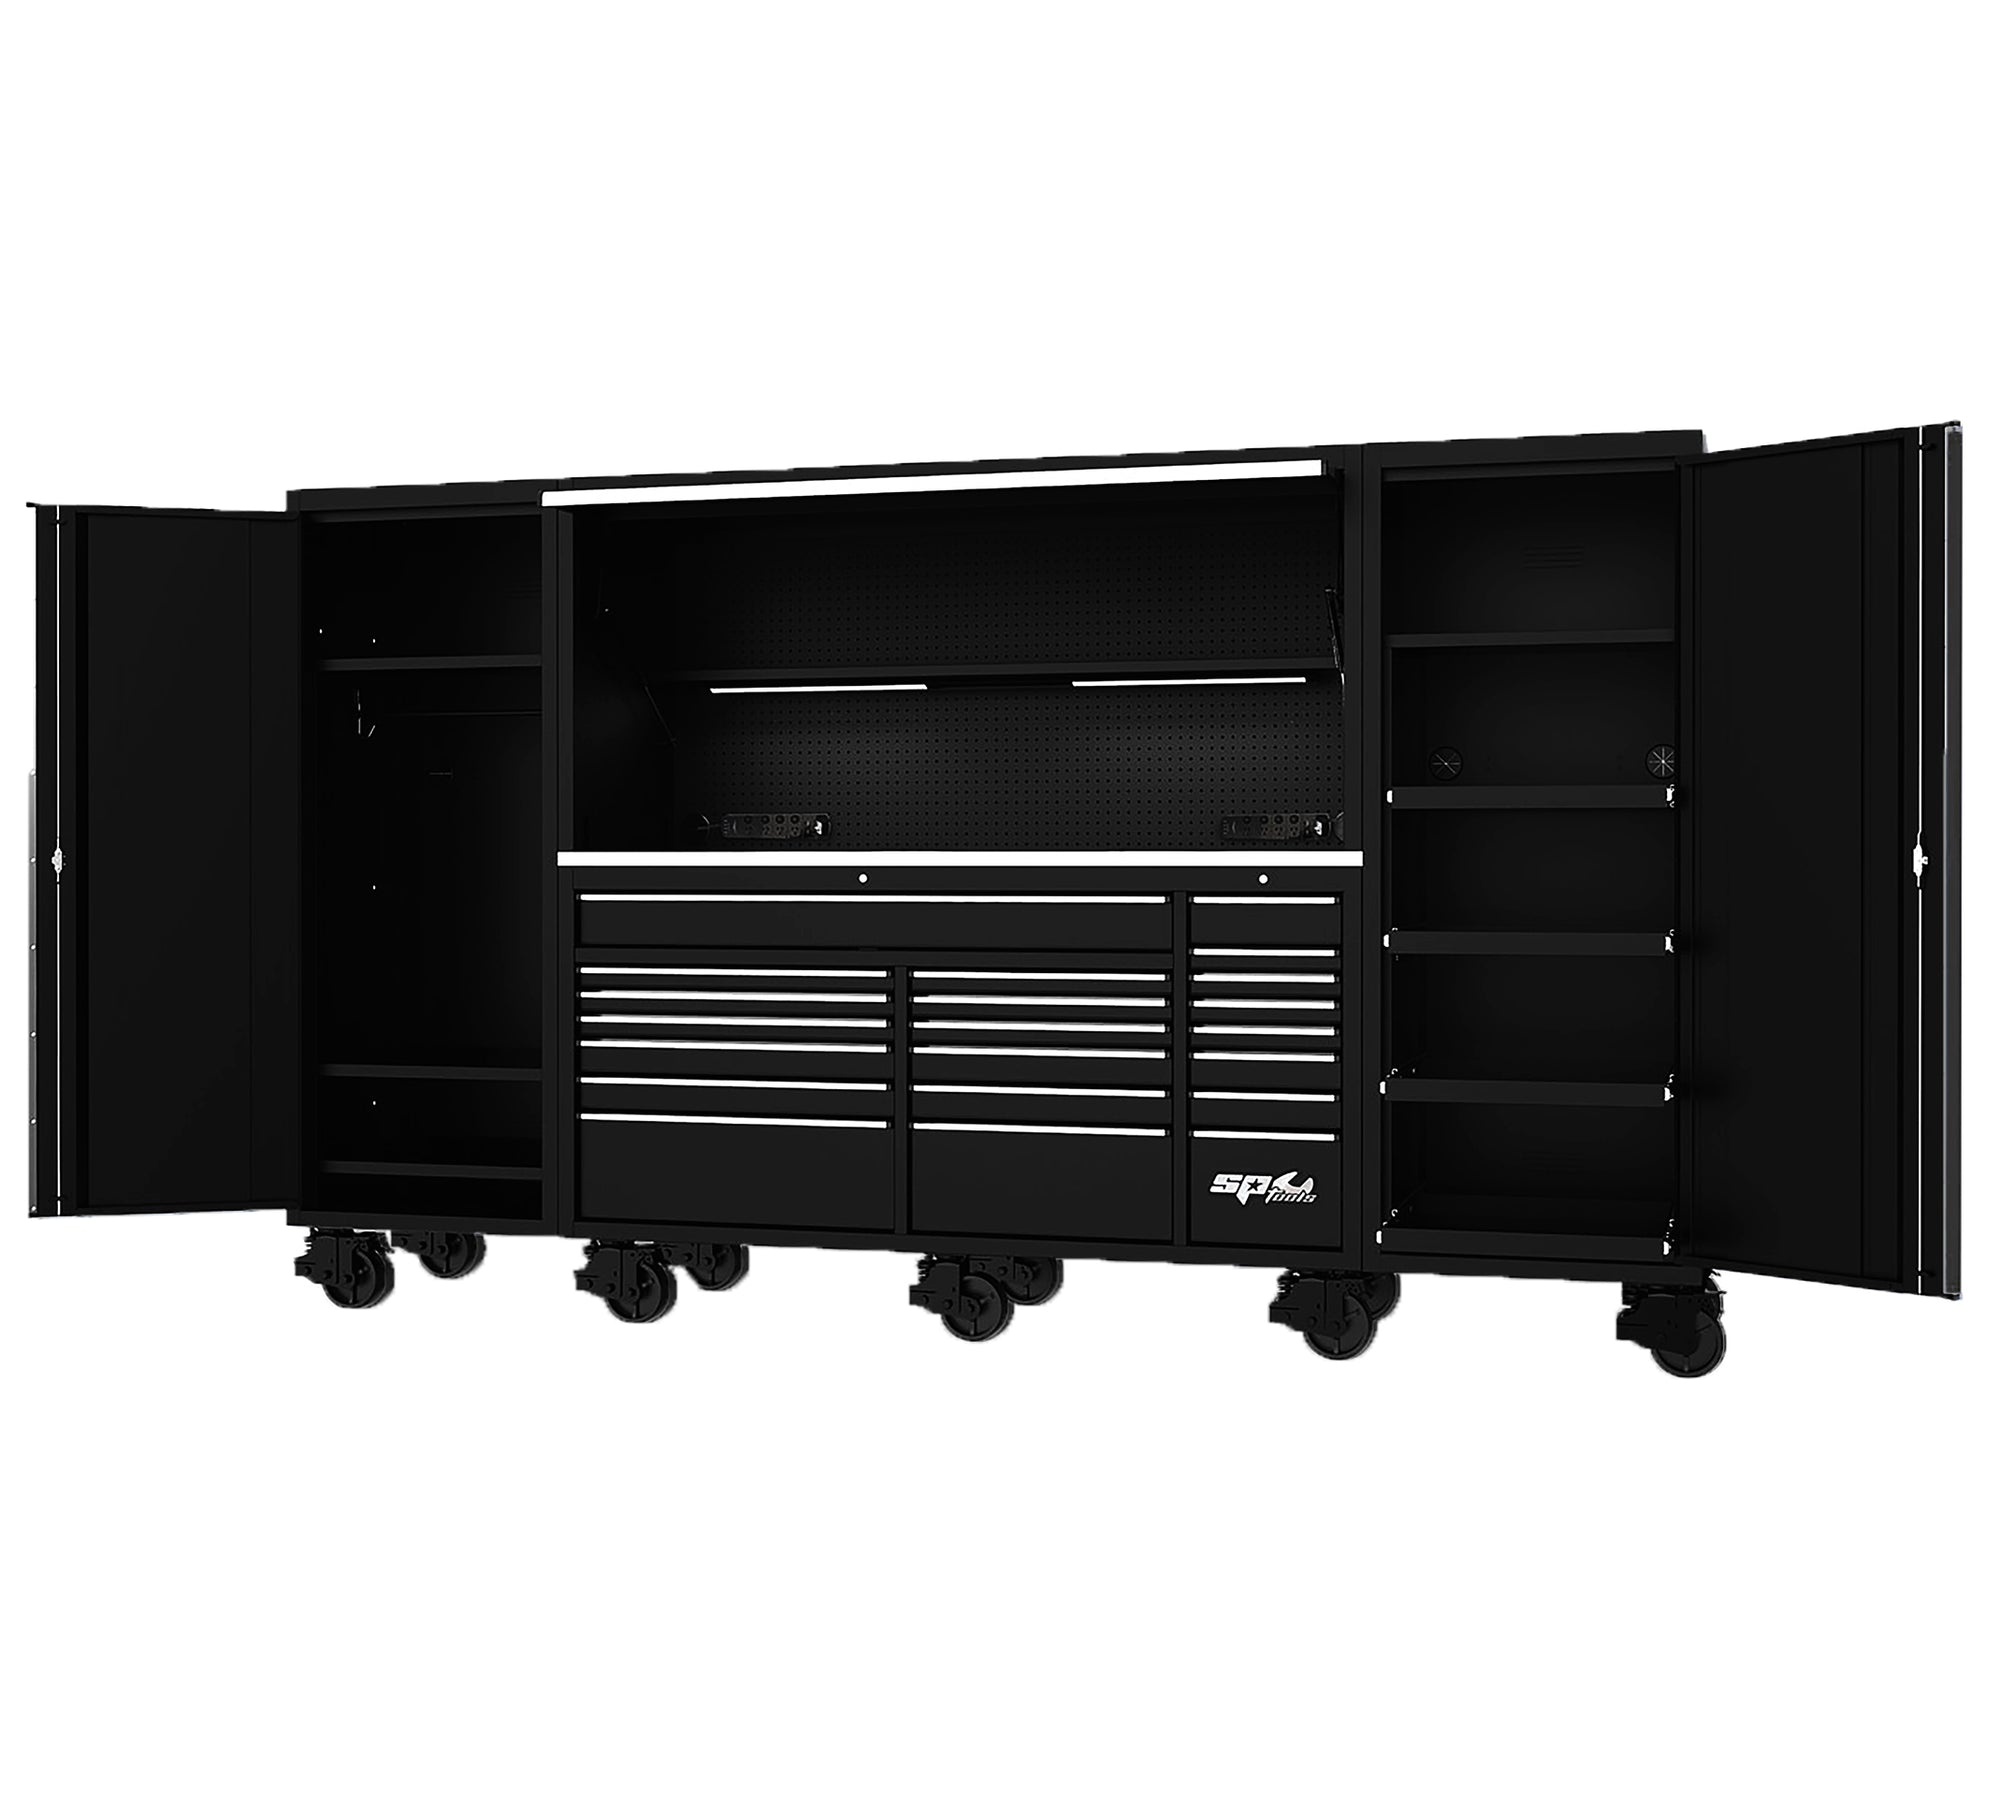 "128"" USA SUMO SERIES COMPLETE WORKSTATION - BLACK"